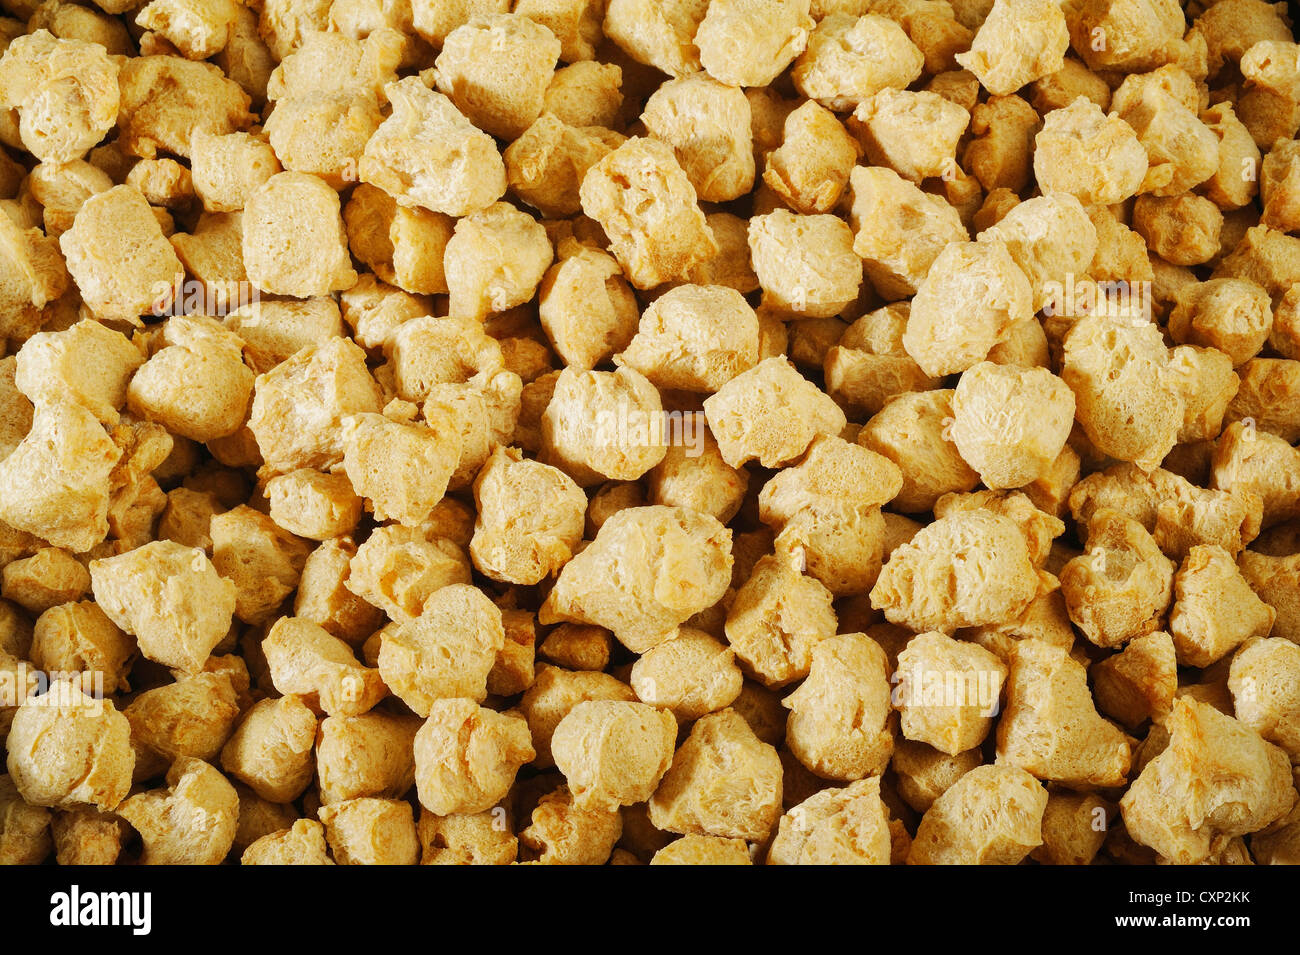 agriculture protein,soya flakes,vegetable protein background - Stock Image